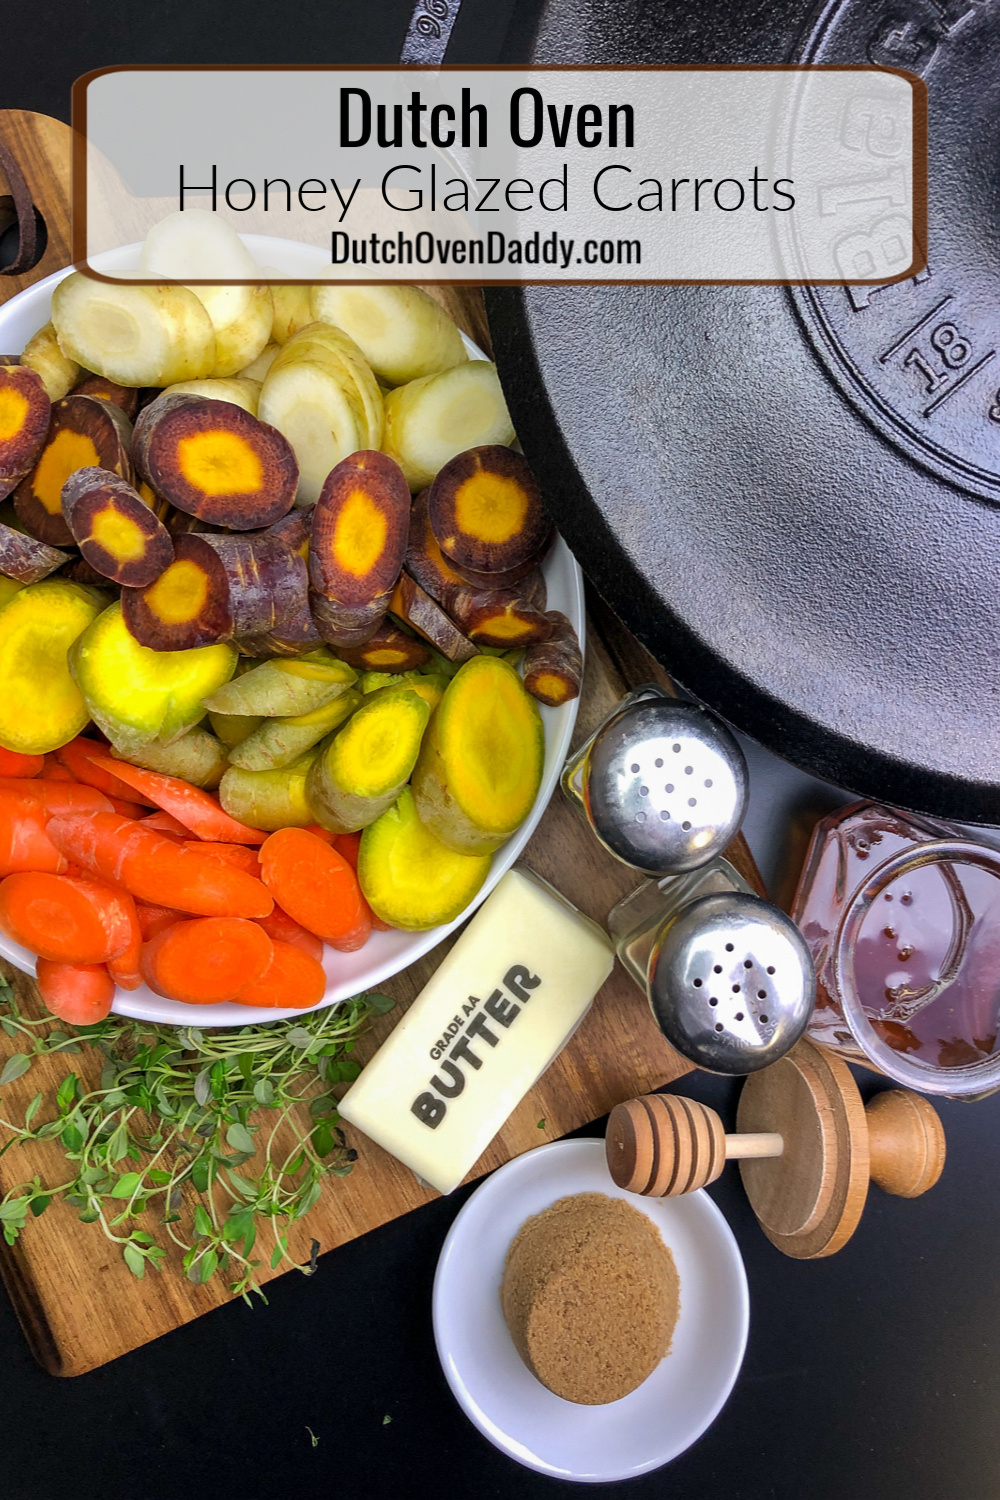 Ingredients necessary to make honey glazed carrots: Dutch oven, rainbow carrots (orange, yellow, purple, and white), butter, salt, pepper, honey, brown sugar, and fresh time.